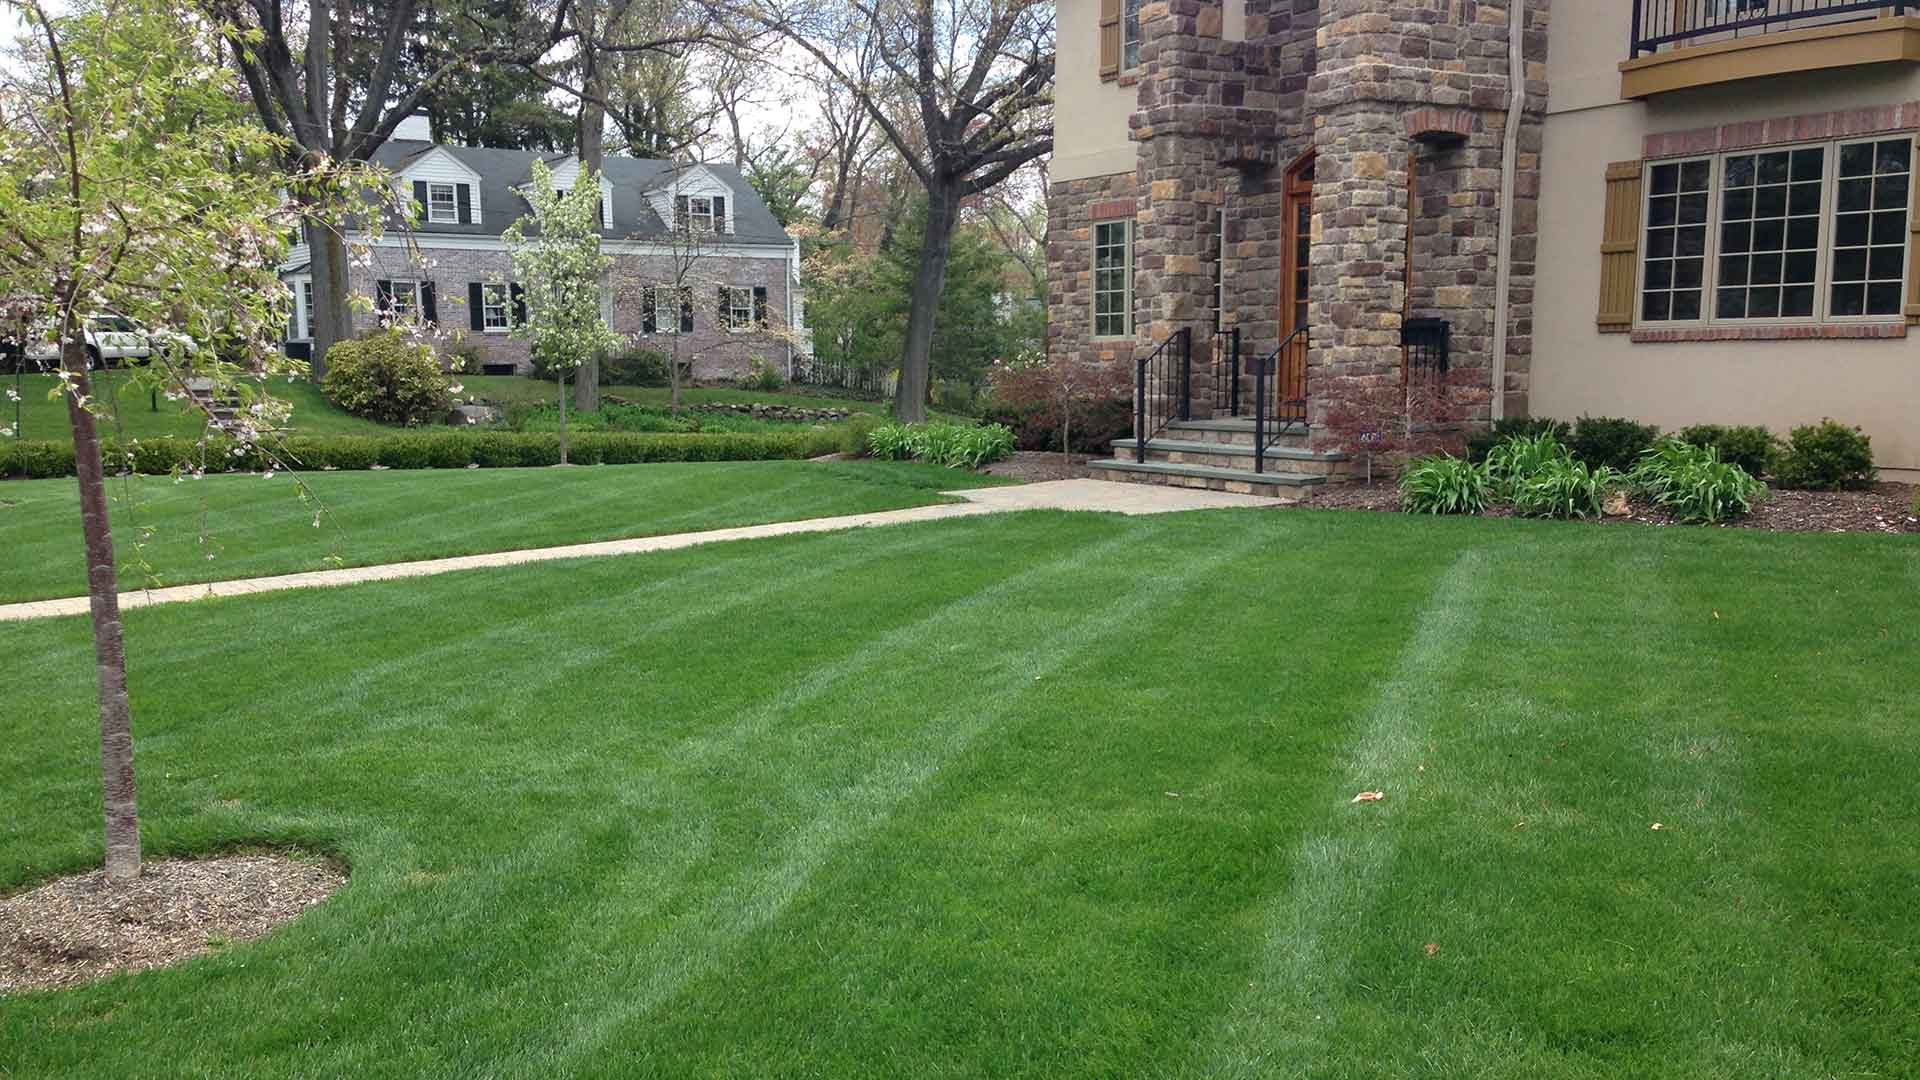 Green and lush front lawn in Scotch Plains, NJ.